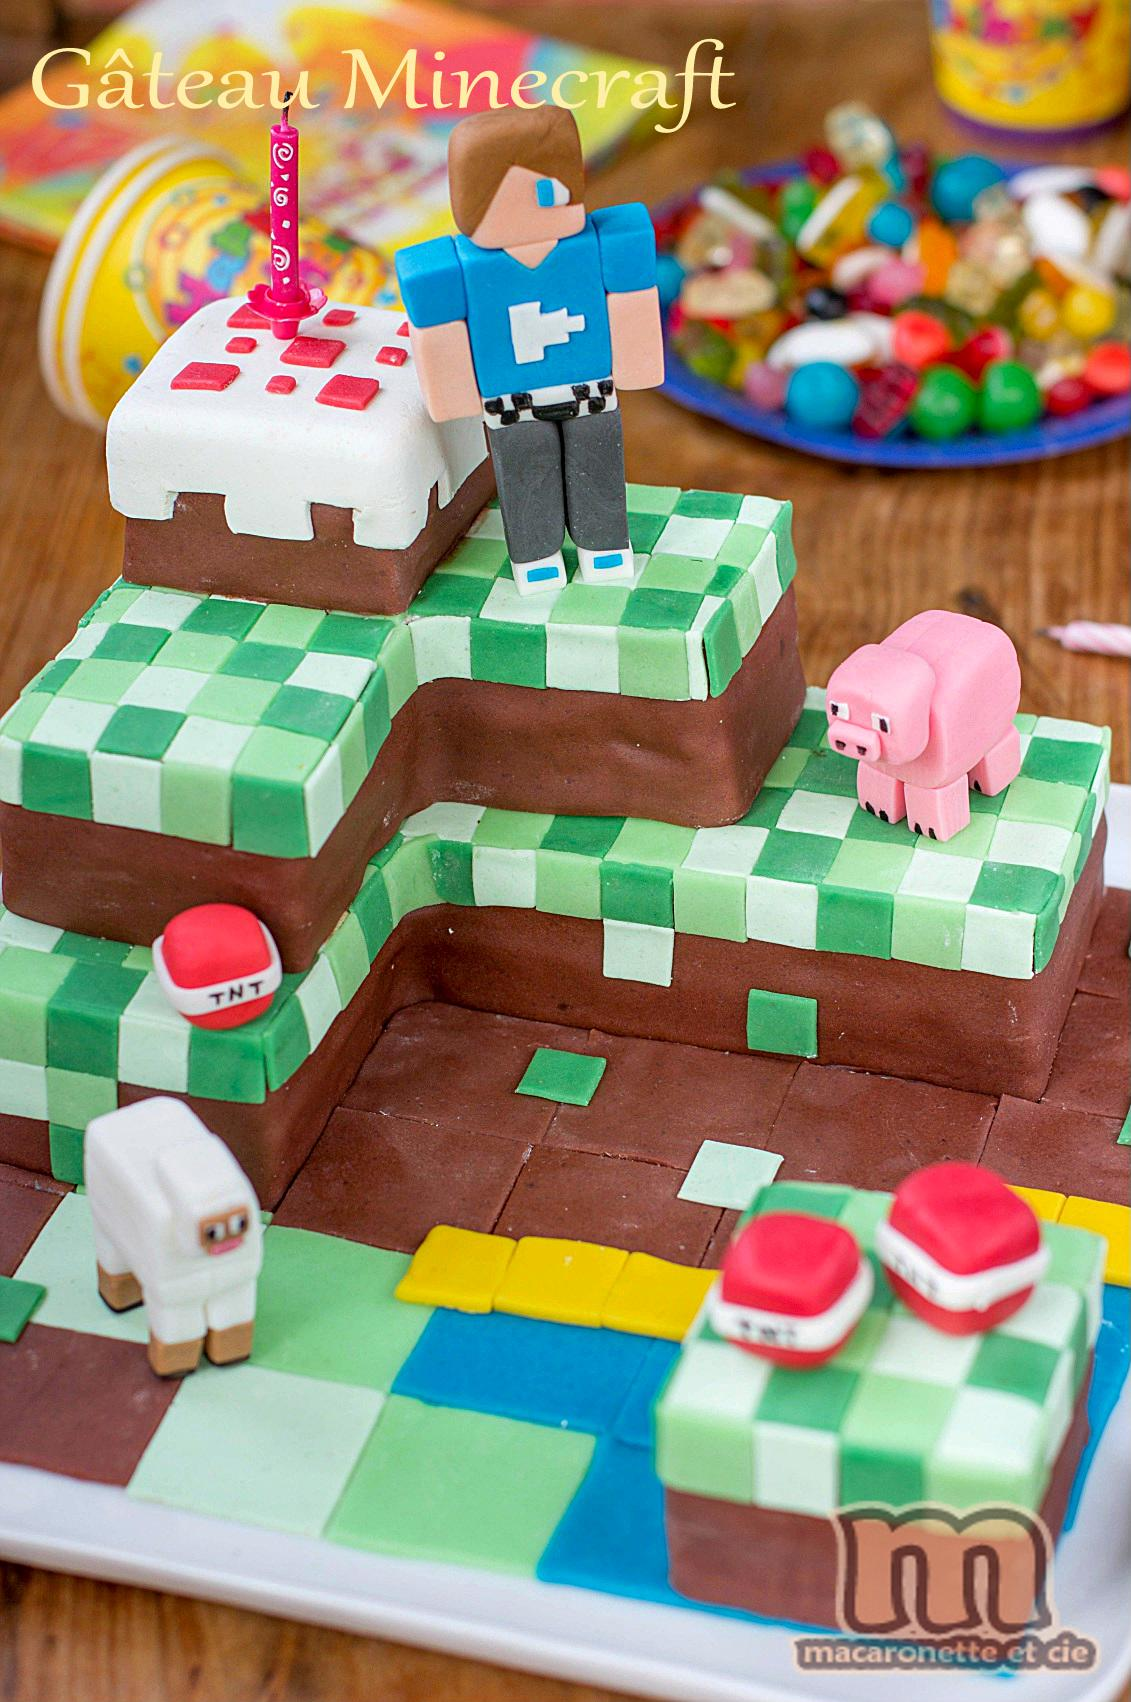 decoration gateau minecraft